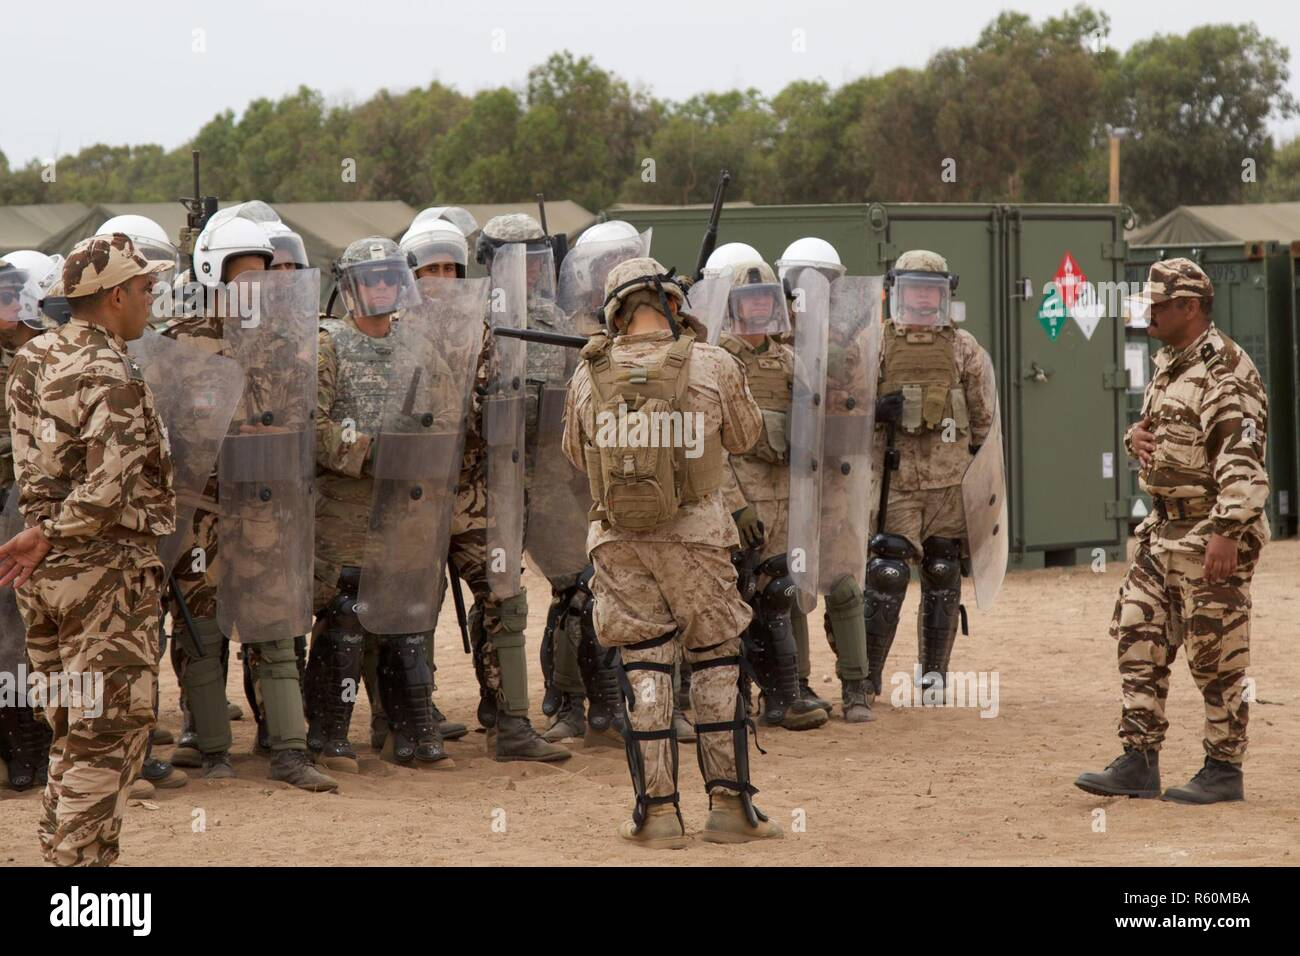 805th Military Police Company High Resolution Stock Photography And Images Alamy